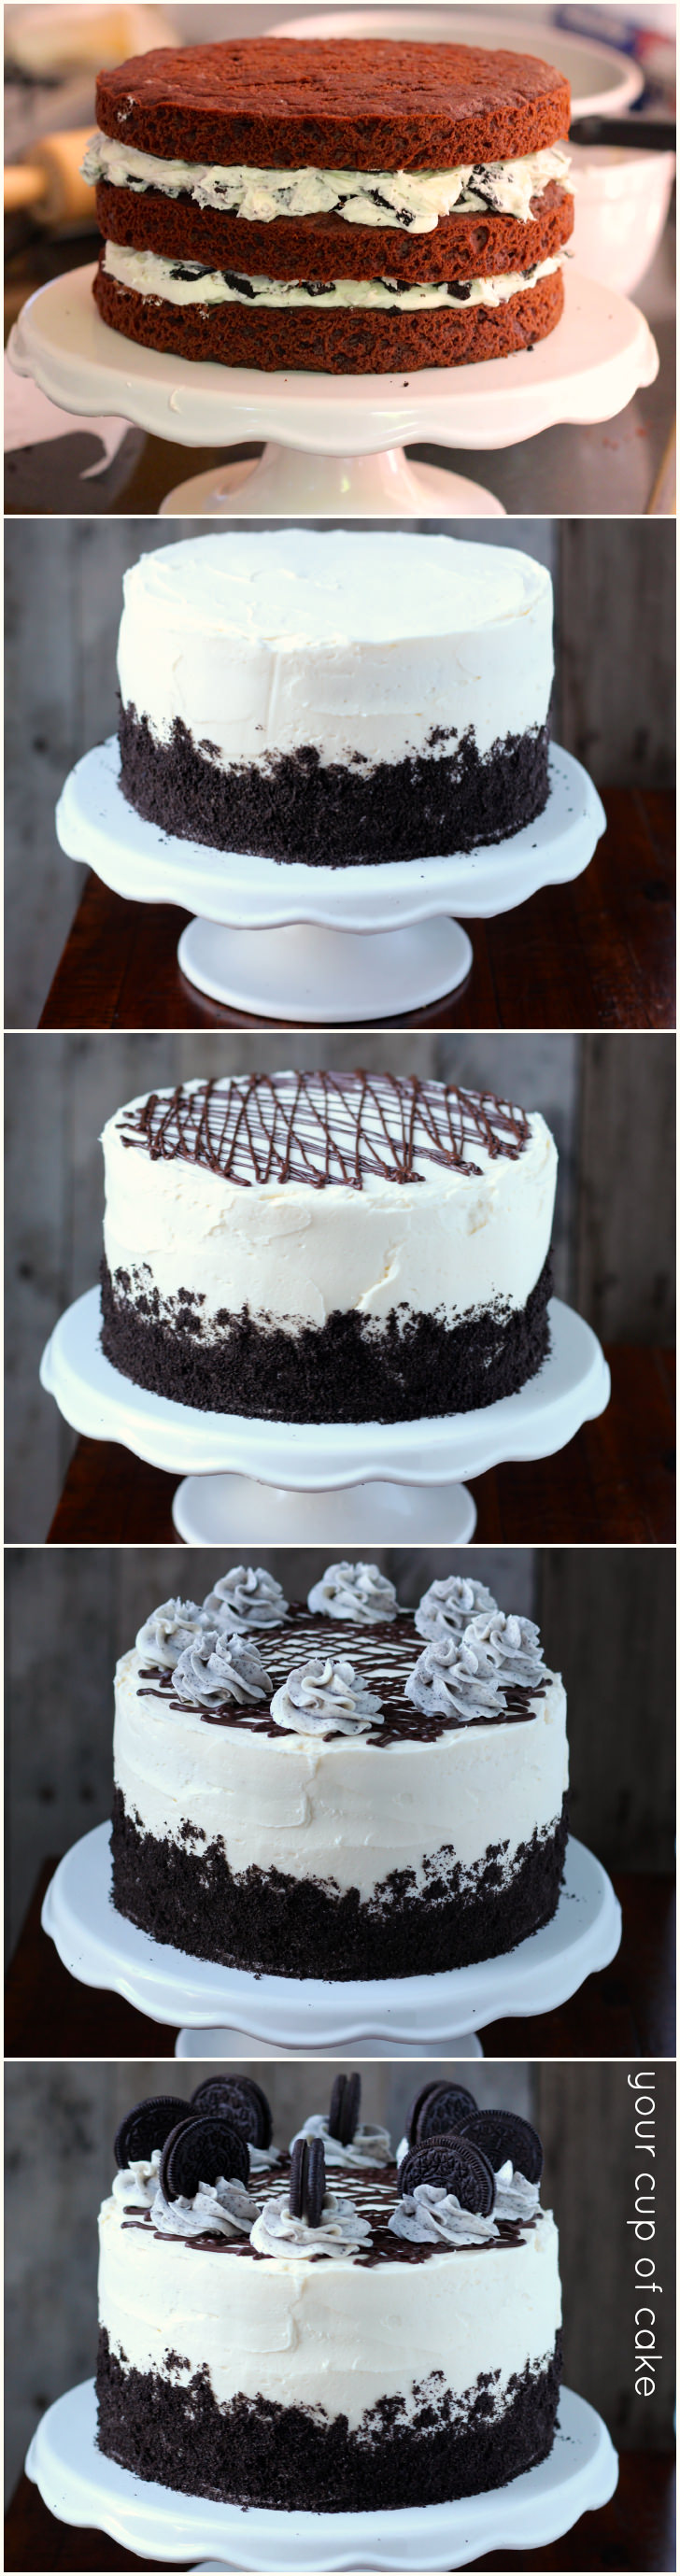 Cake Decorating Ideas With Oreos : cookiescrumbsandchickens